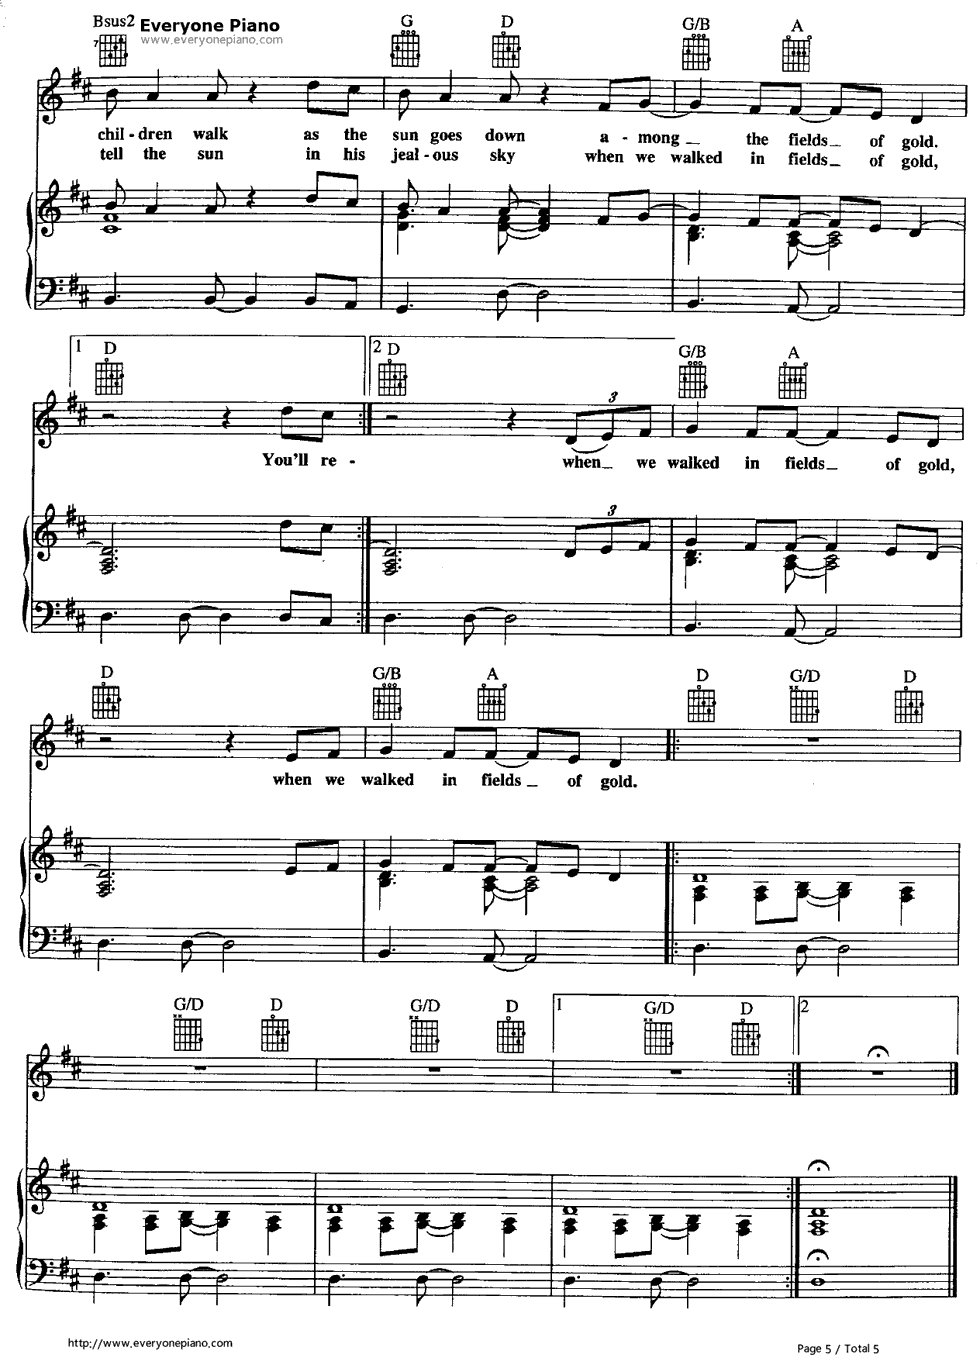 Jealous labrinth chords piano music sheets chords tablature guitar chords sheet music hexwebz Images